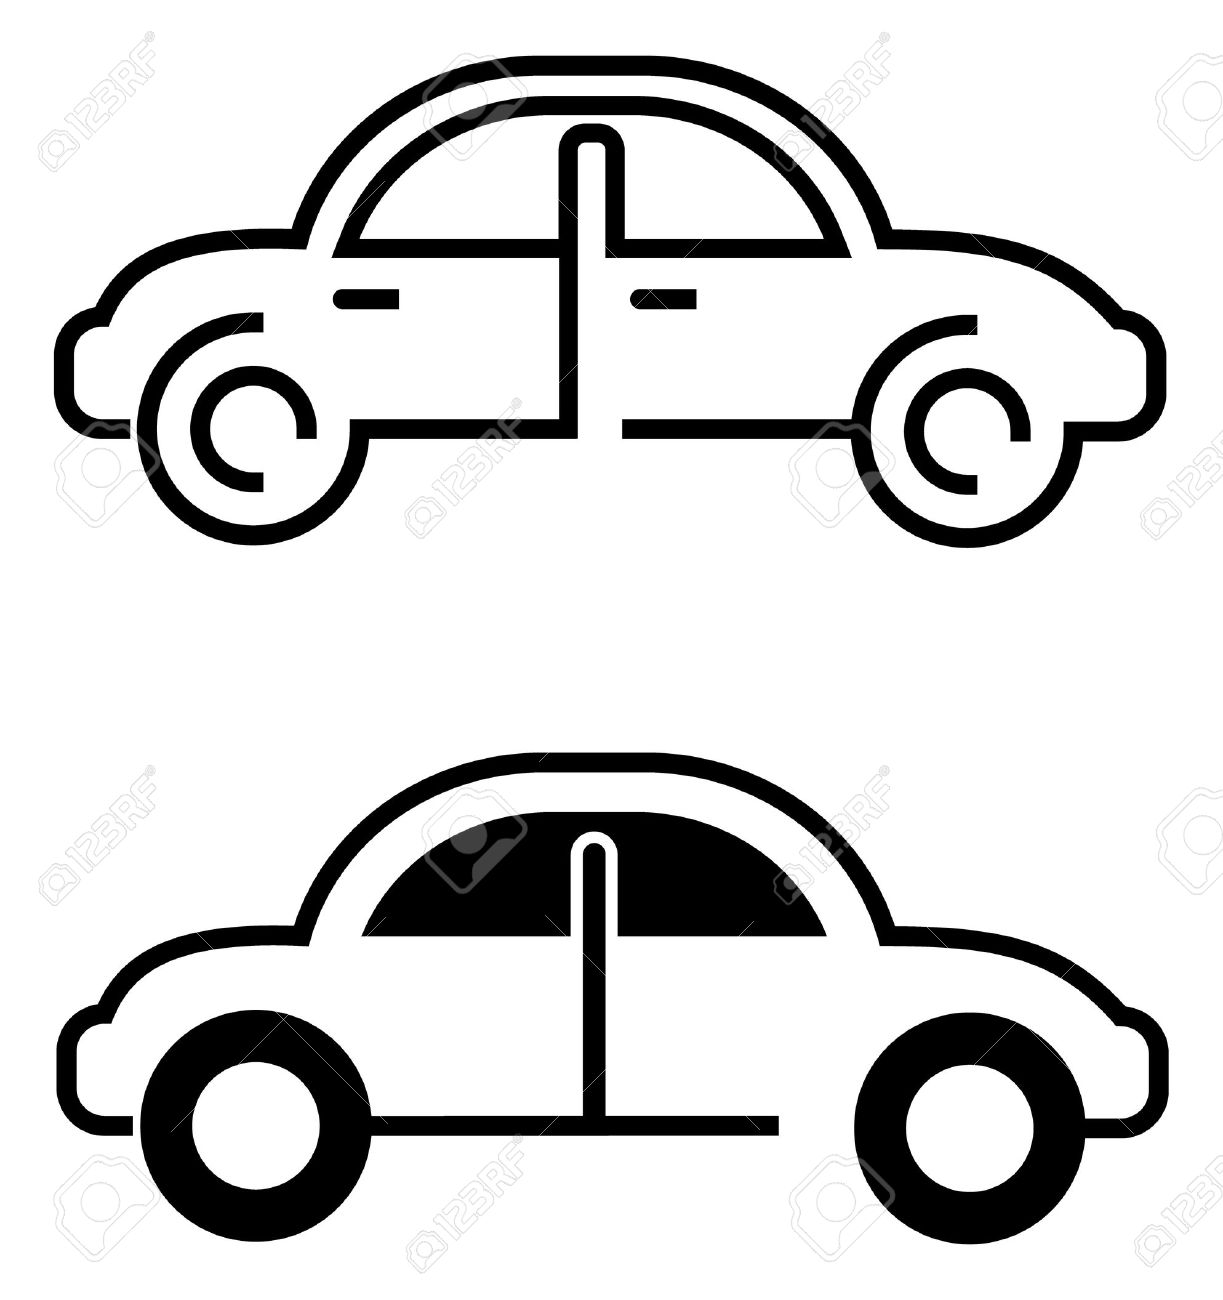 Car Vector Icon Vector Car vector icon on